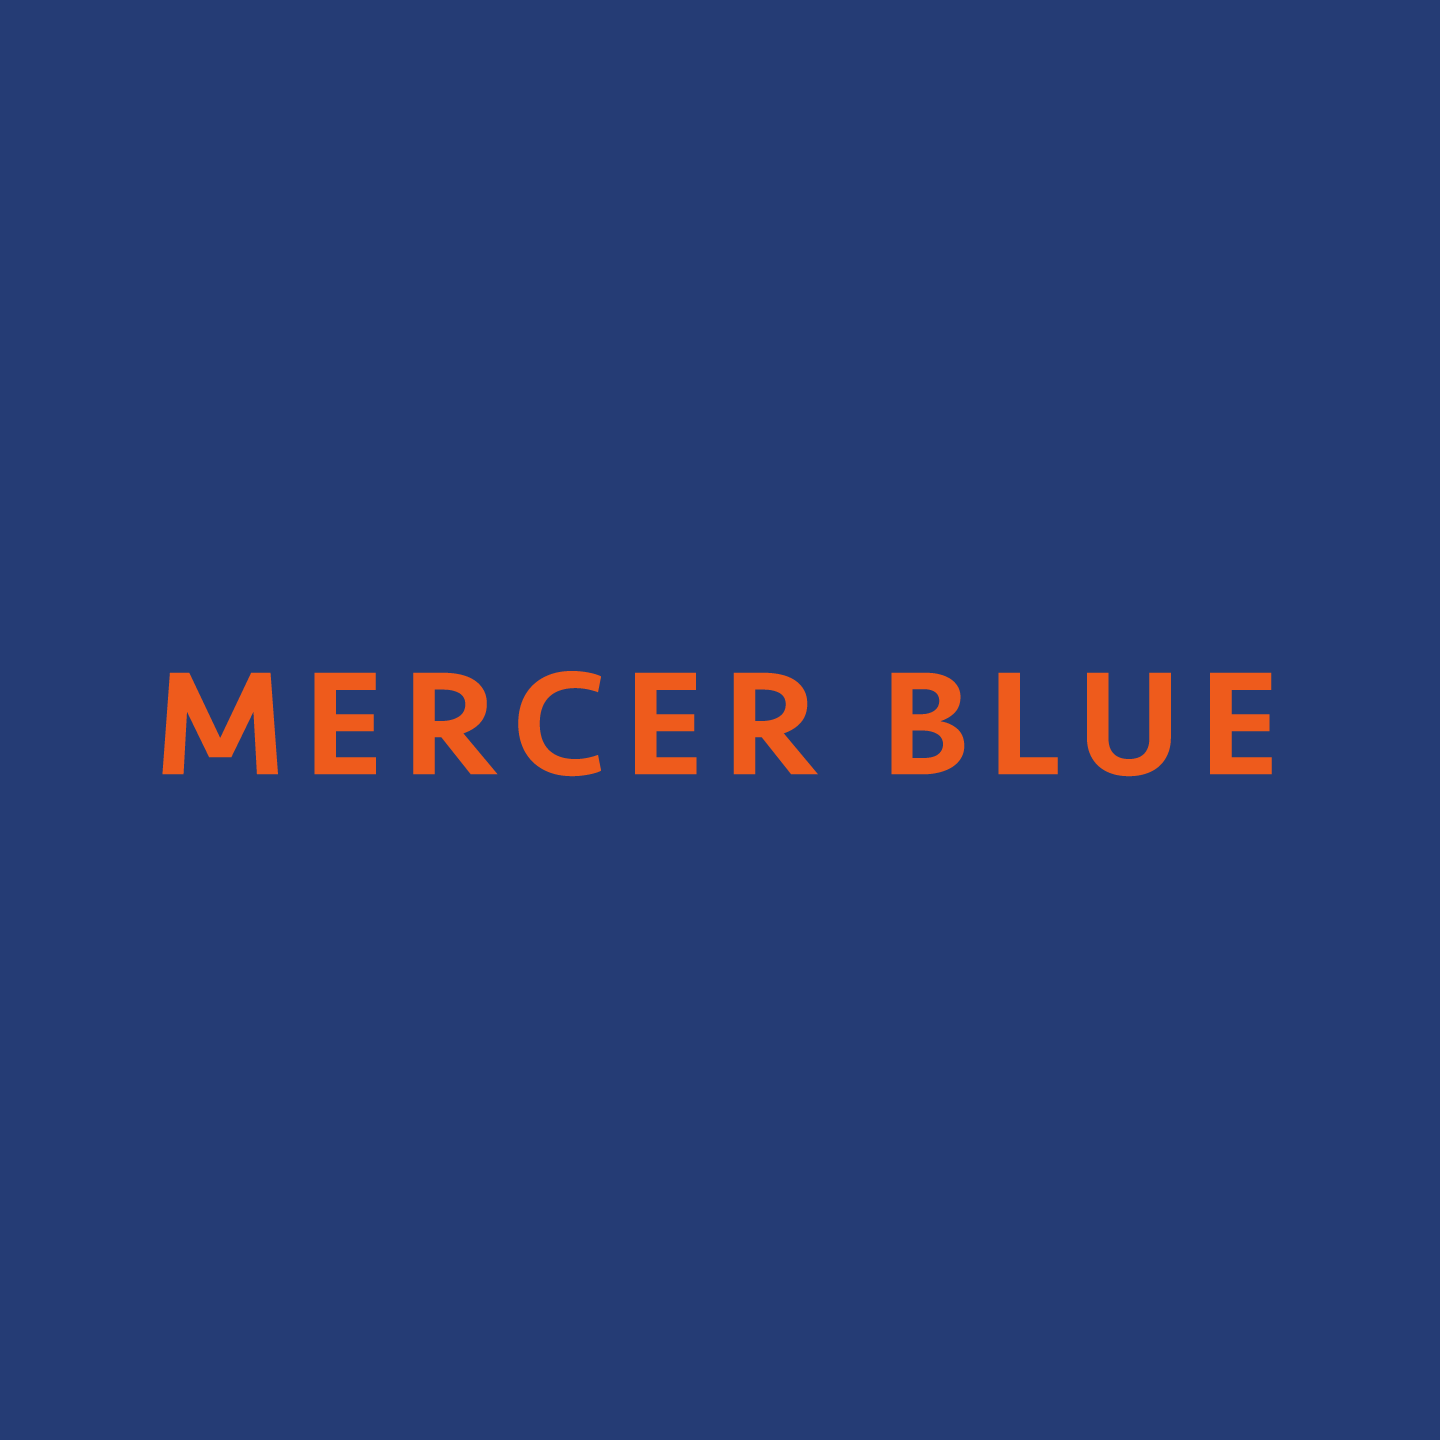 Mercer Blue